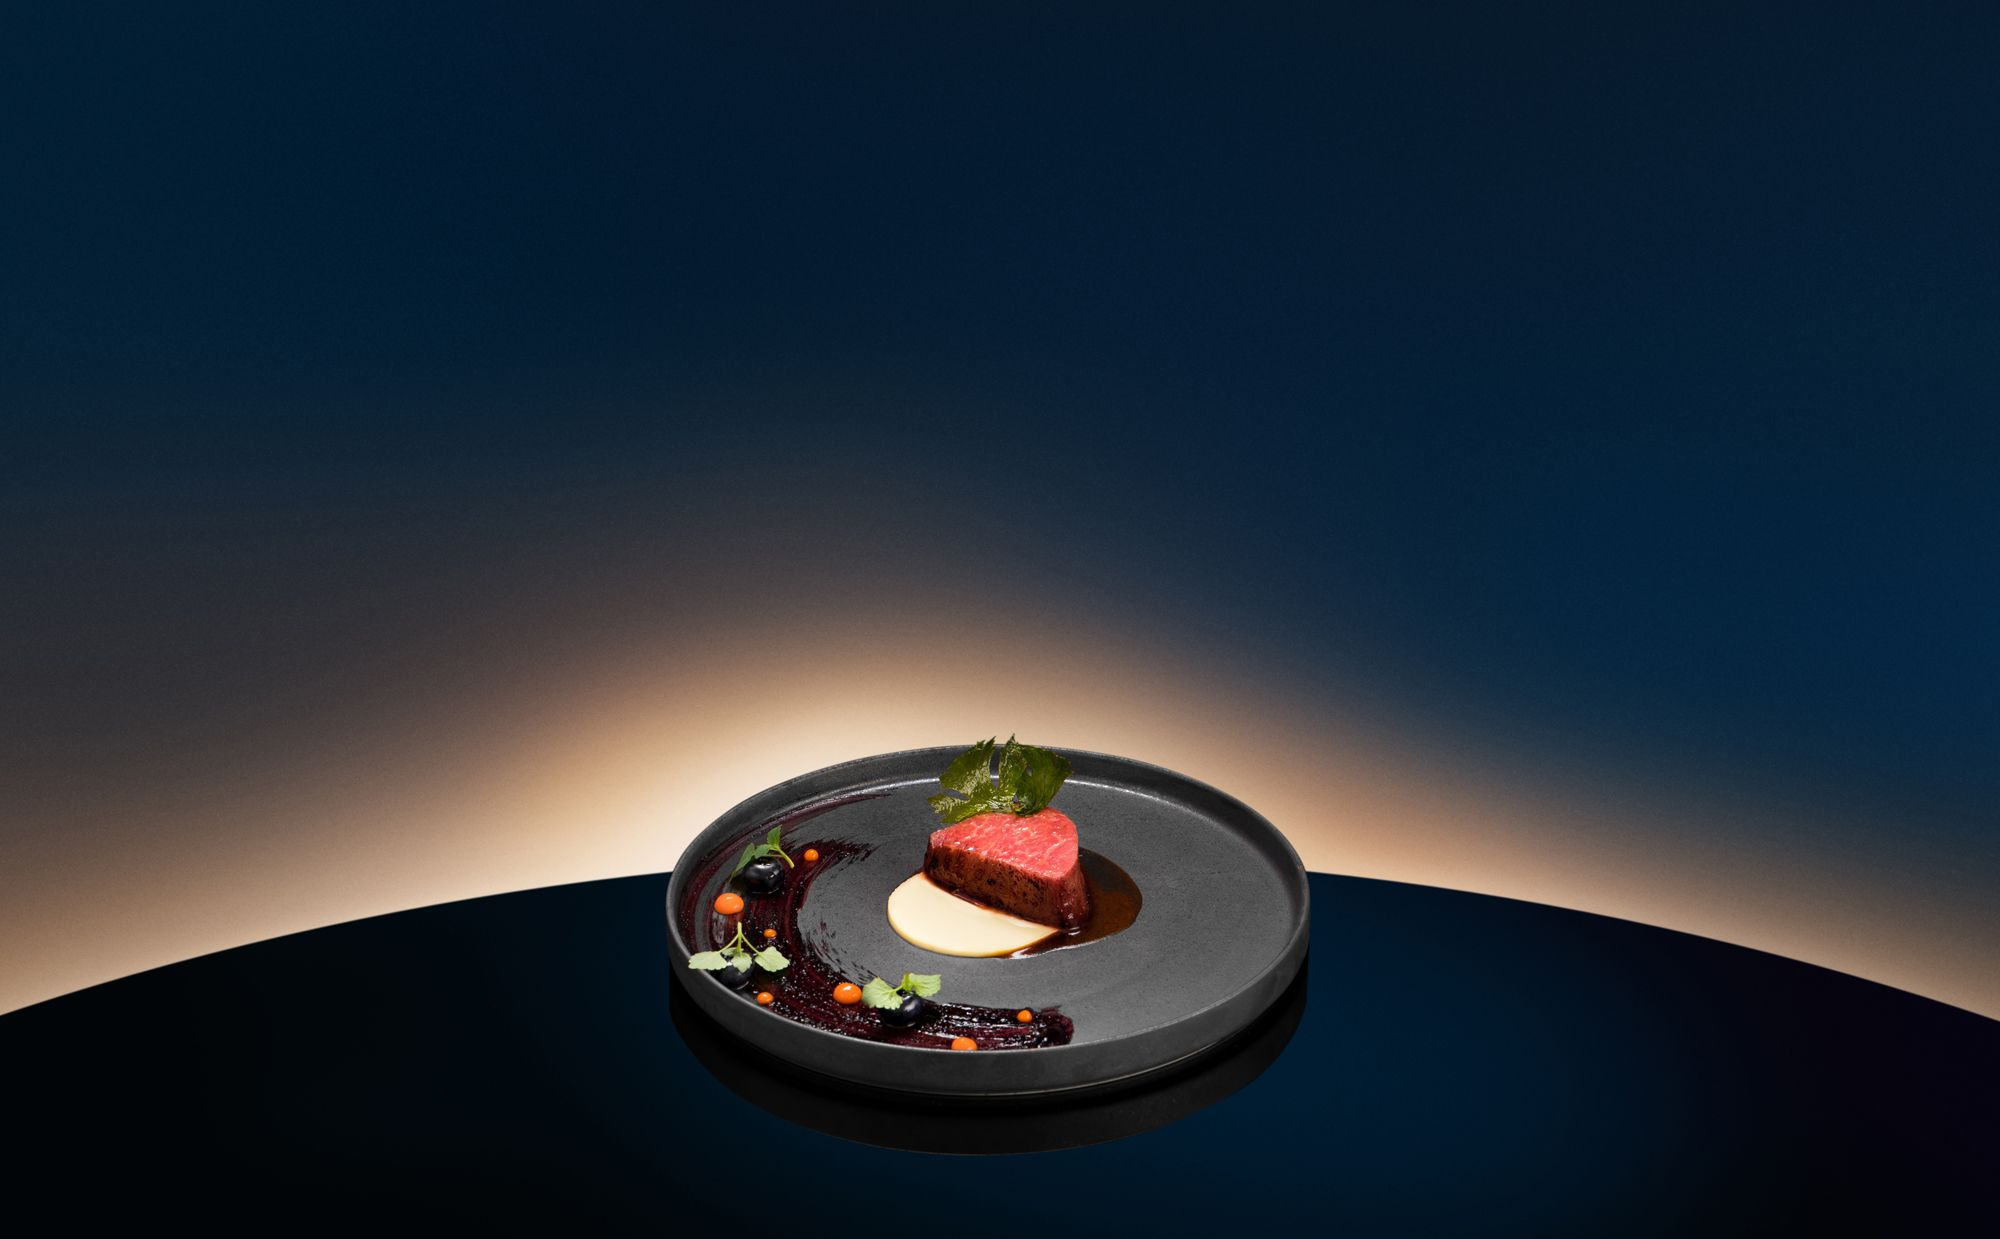 Michelin Stargazing: Introducing Stellar Dining Series By The Ritz-Carlton